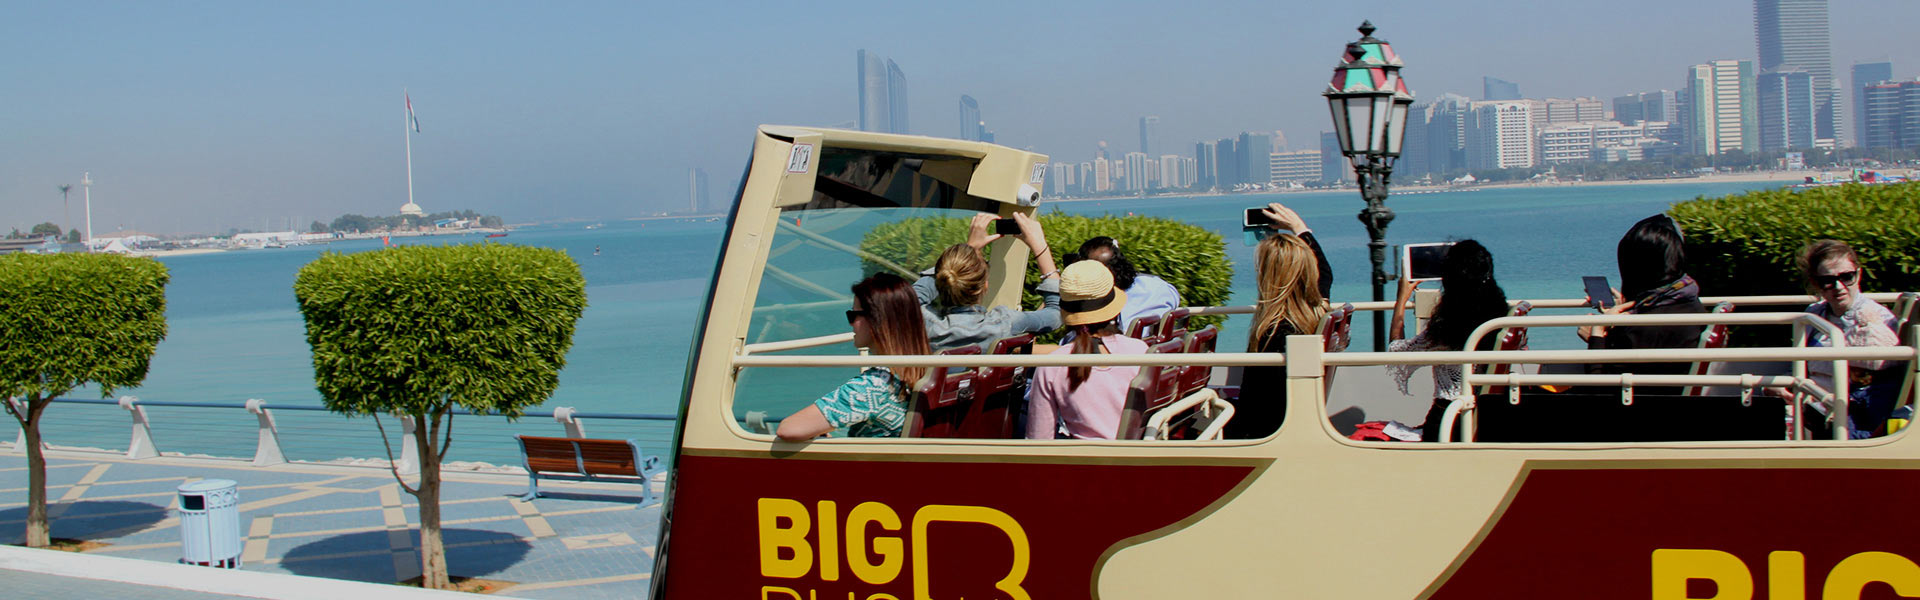 Passengers on Big Bus Abu Dhabi tour